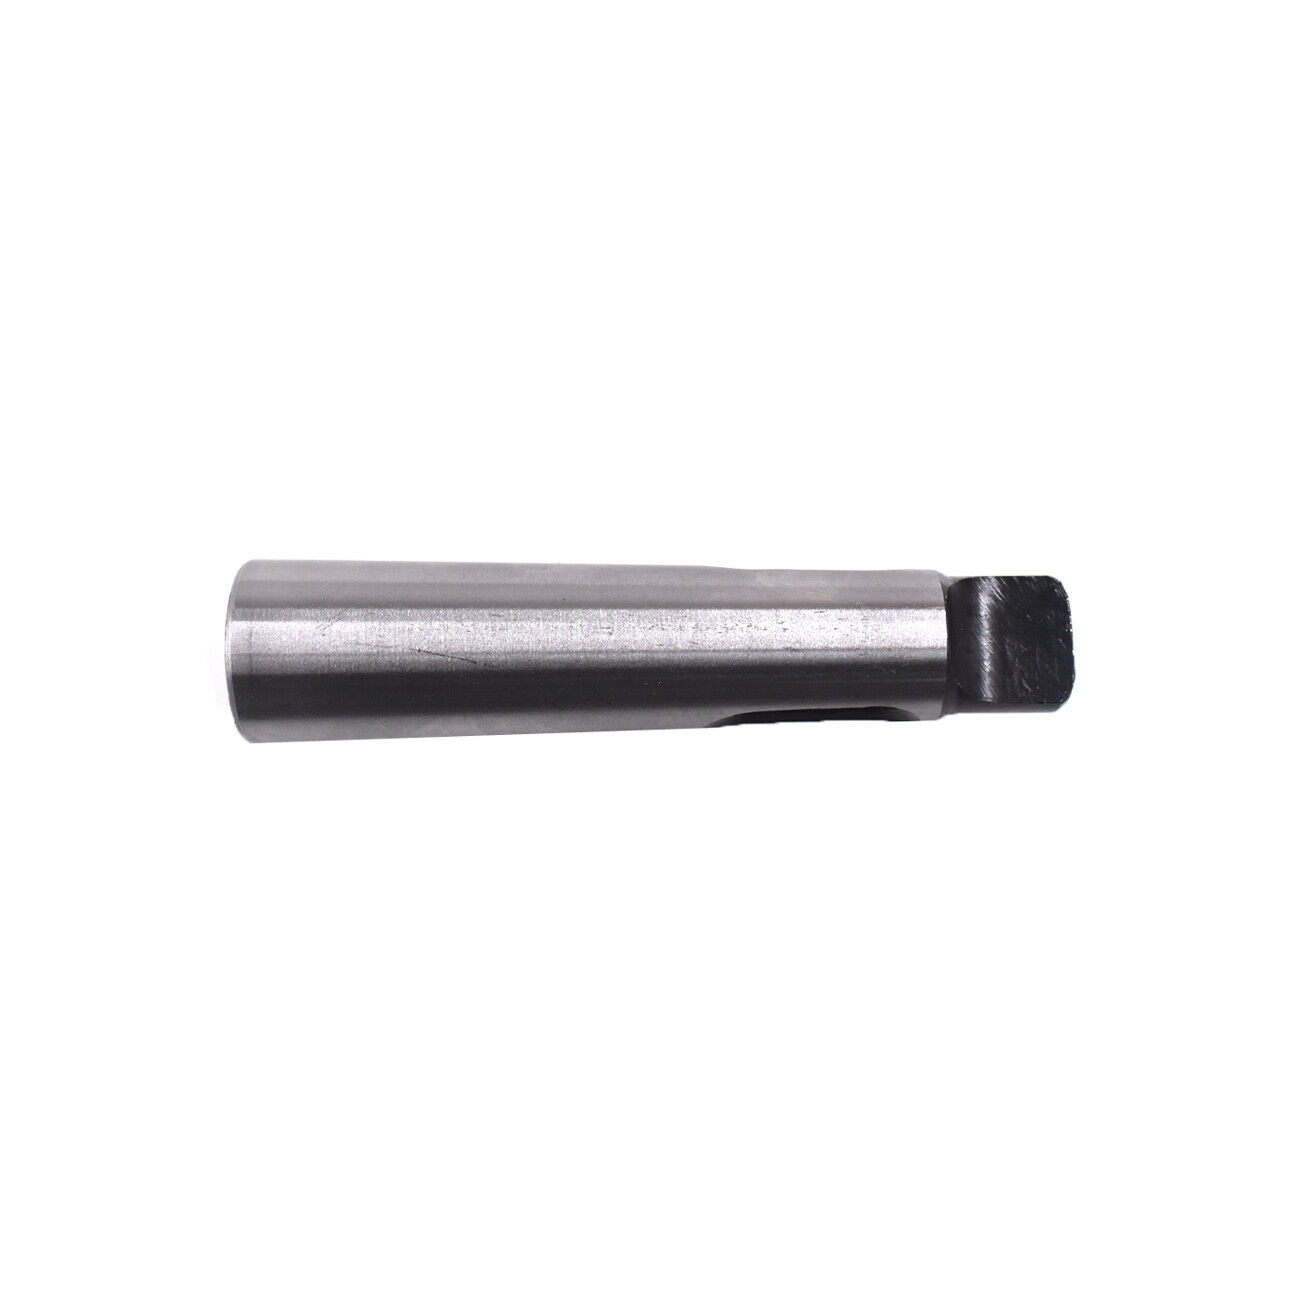 MT3 to MT4  Lathes Part Morse Taper Adapter Reducing Drill Sleeve